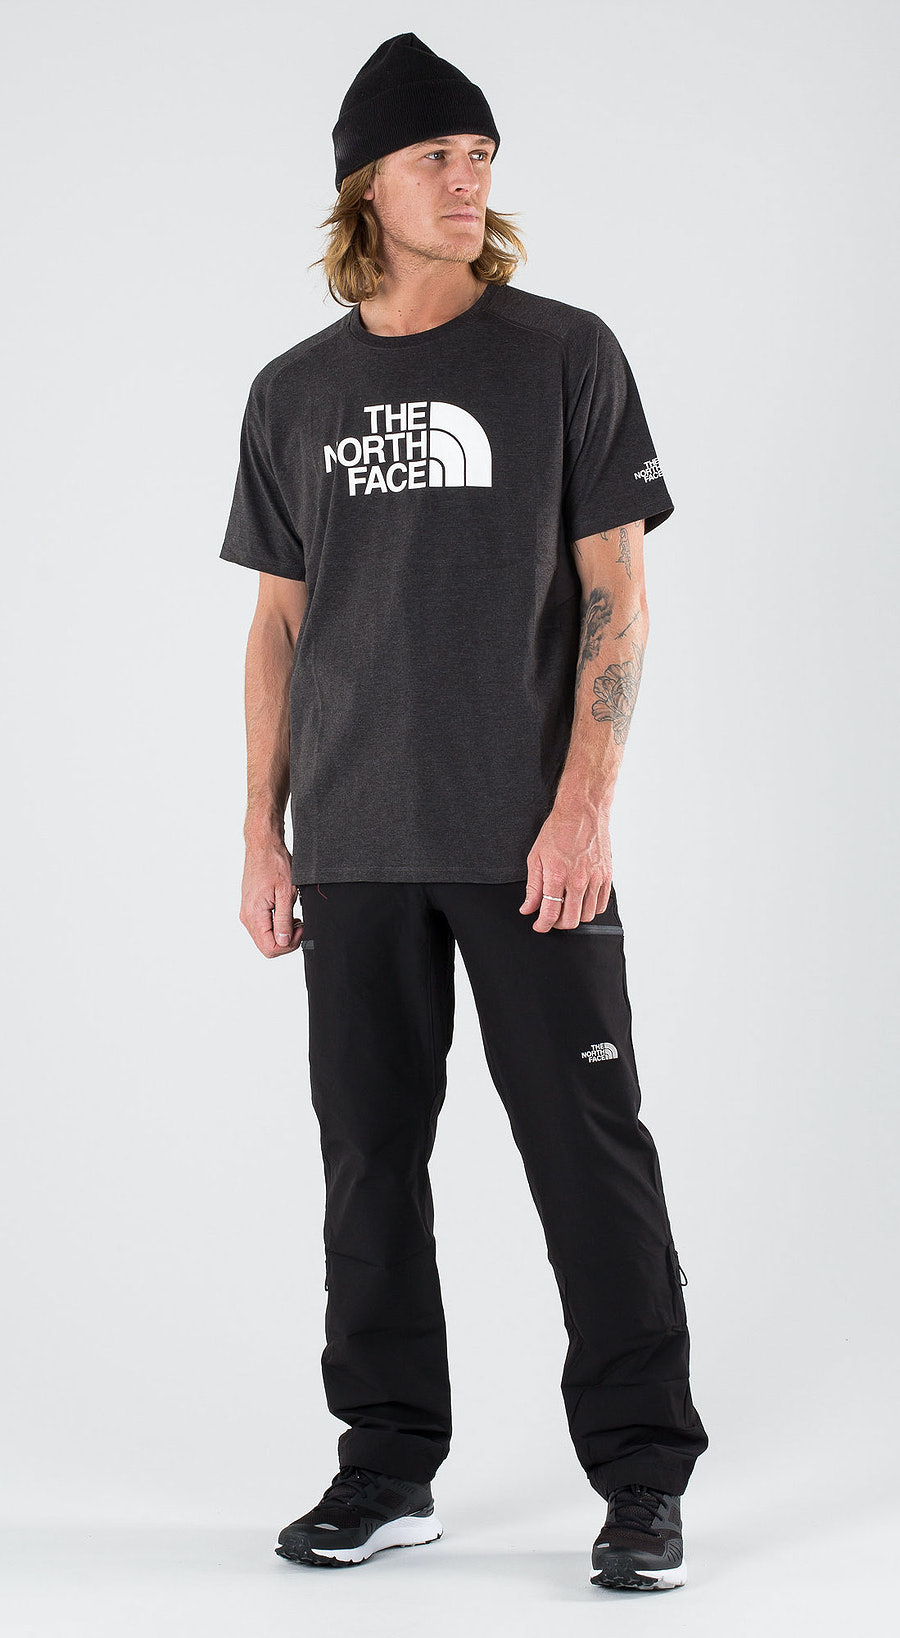 The North Face Wicke Graphi Cr-Eu Tnfdarkgryhtr/Highrisegry Outfit Multi